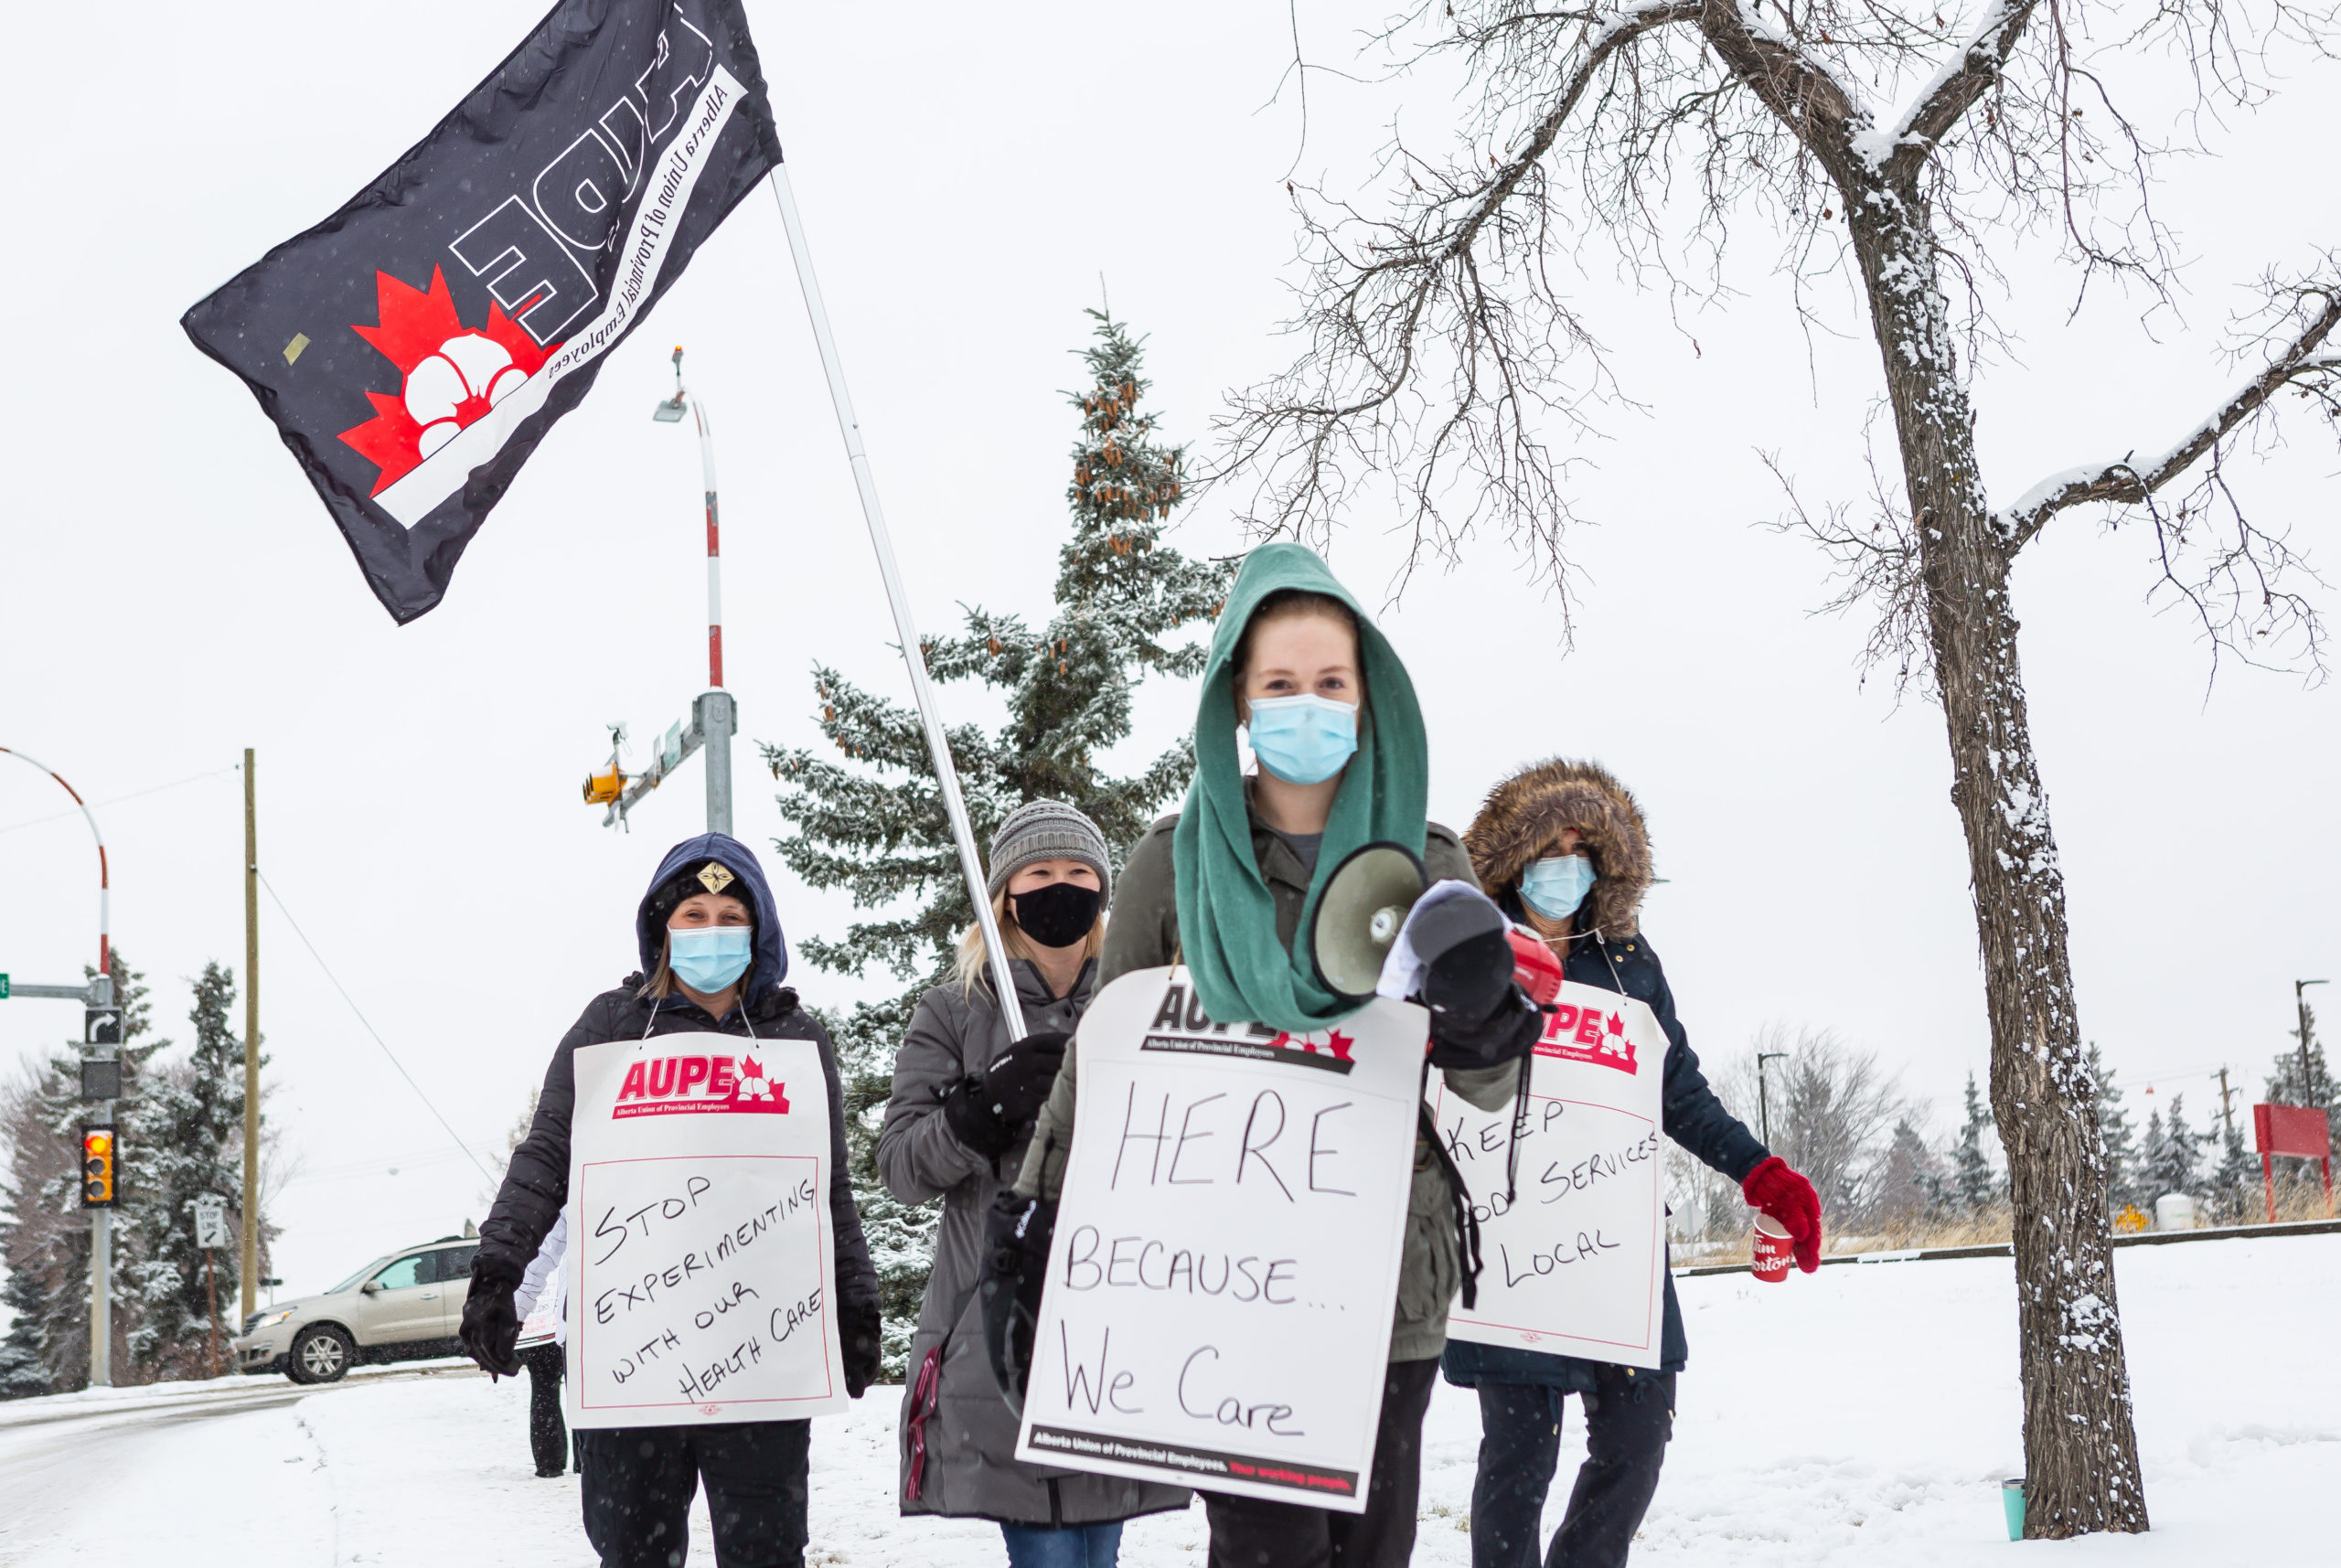 Alberta hospital worker strike ruled illegal by Alberta Labour Relations Board